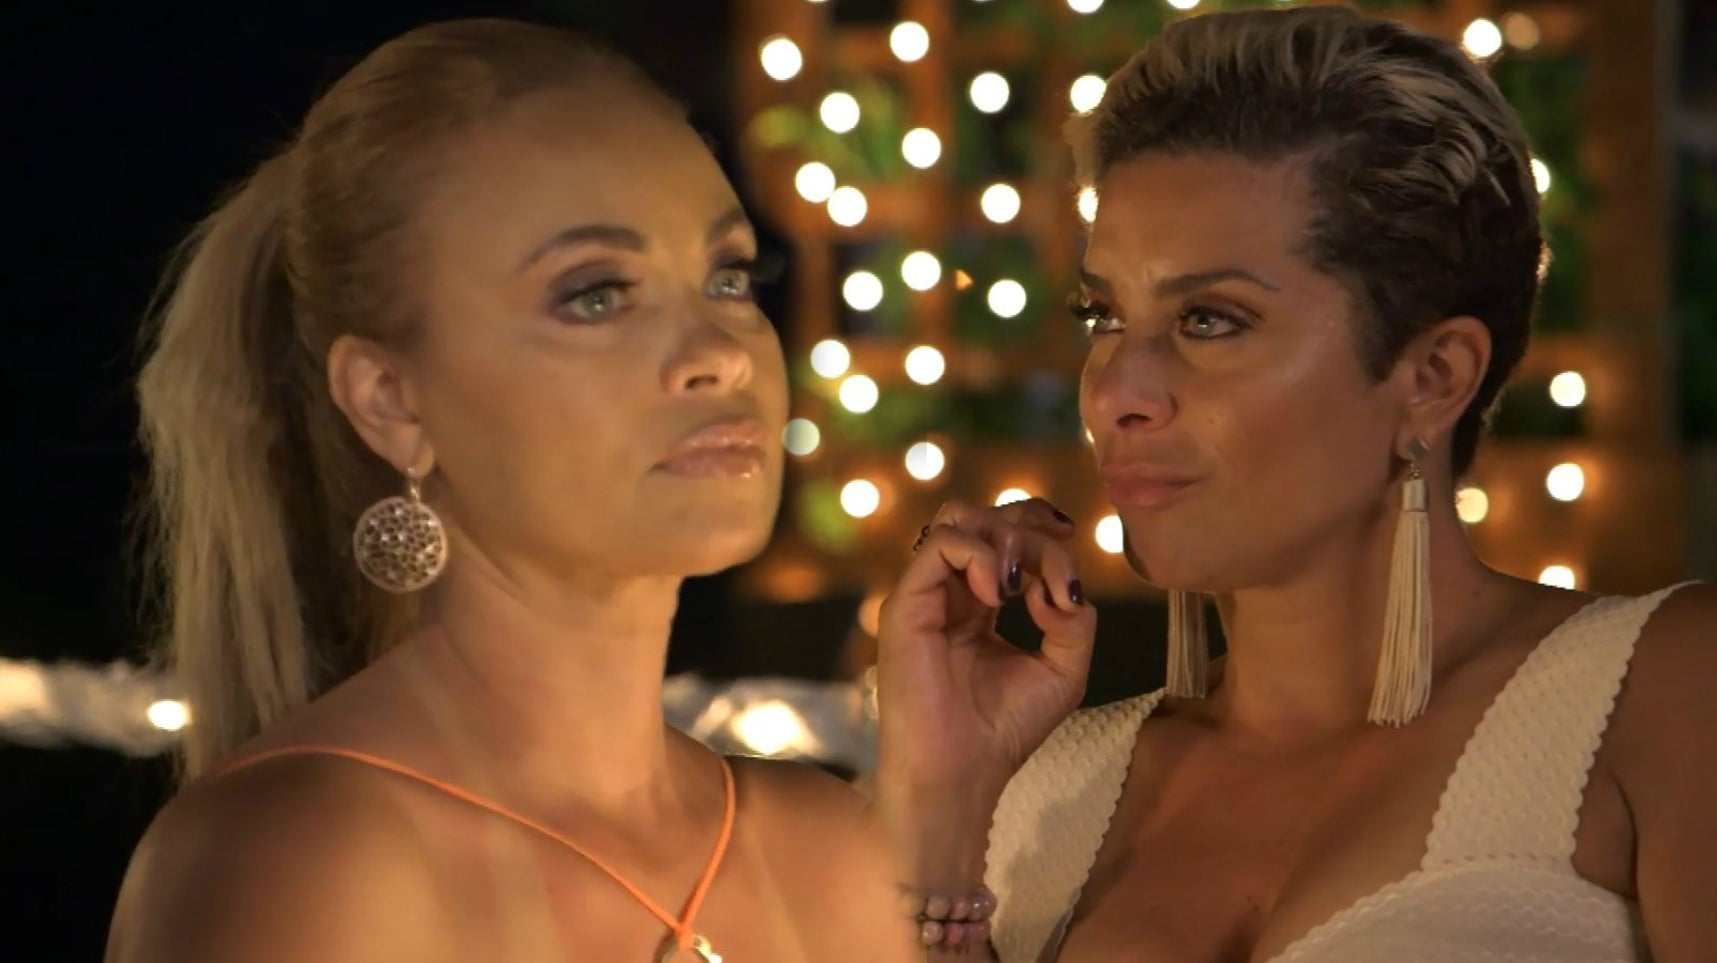 'RHOP': Watch Robyn Dixon Confront Gizelle Bryant Over Her Messy Behavior (Exclusive)